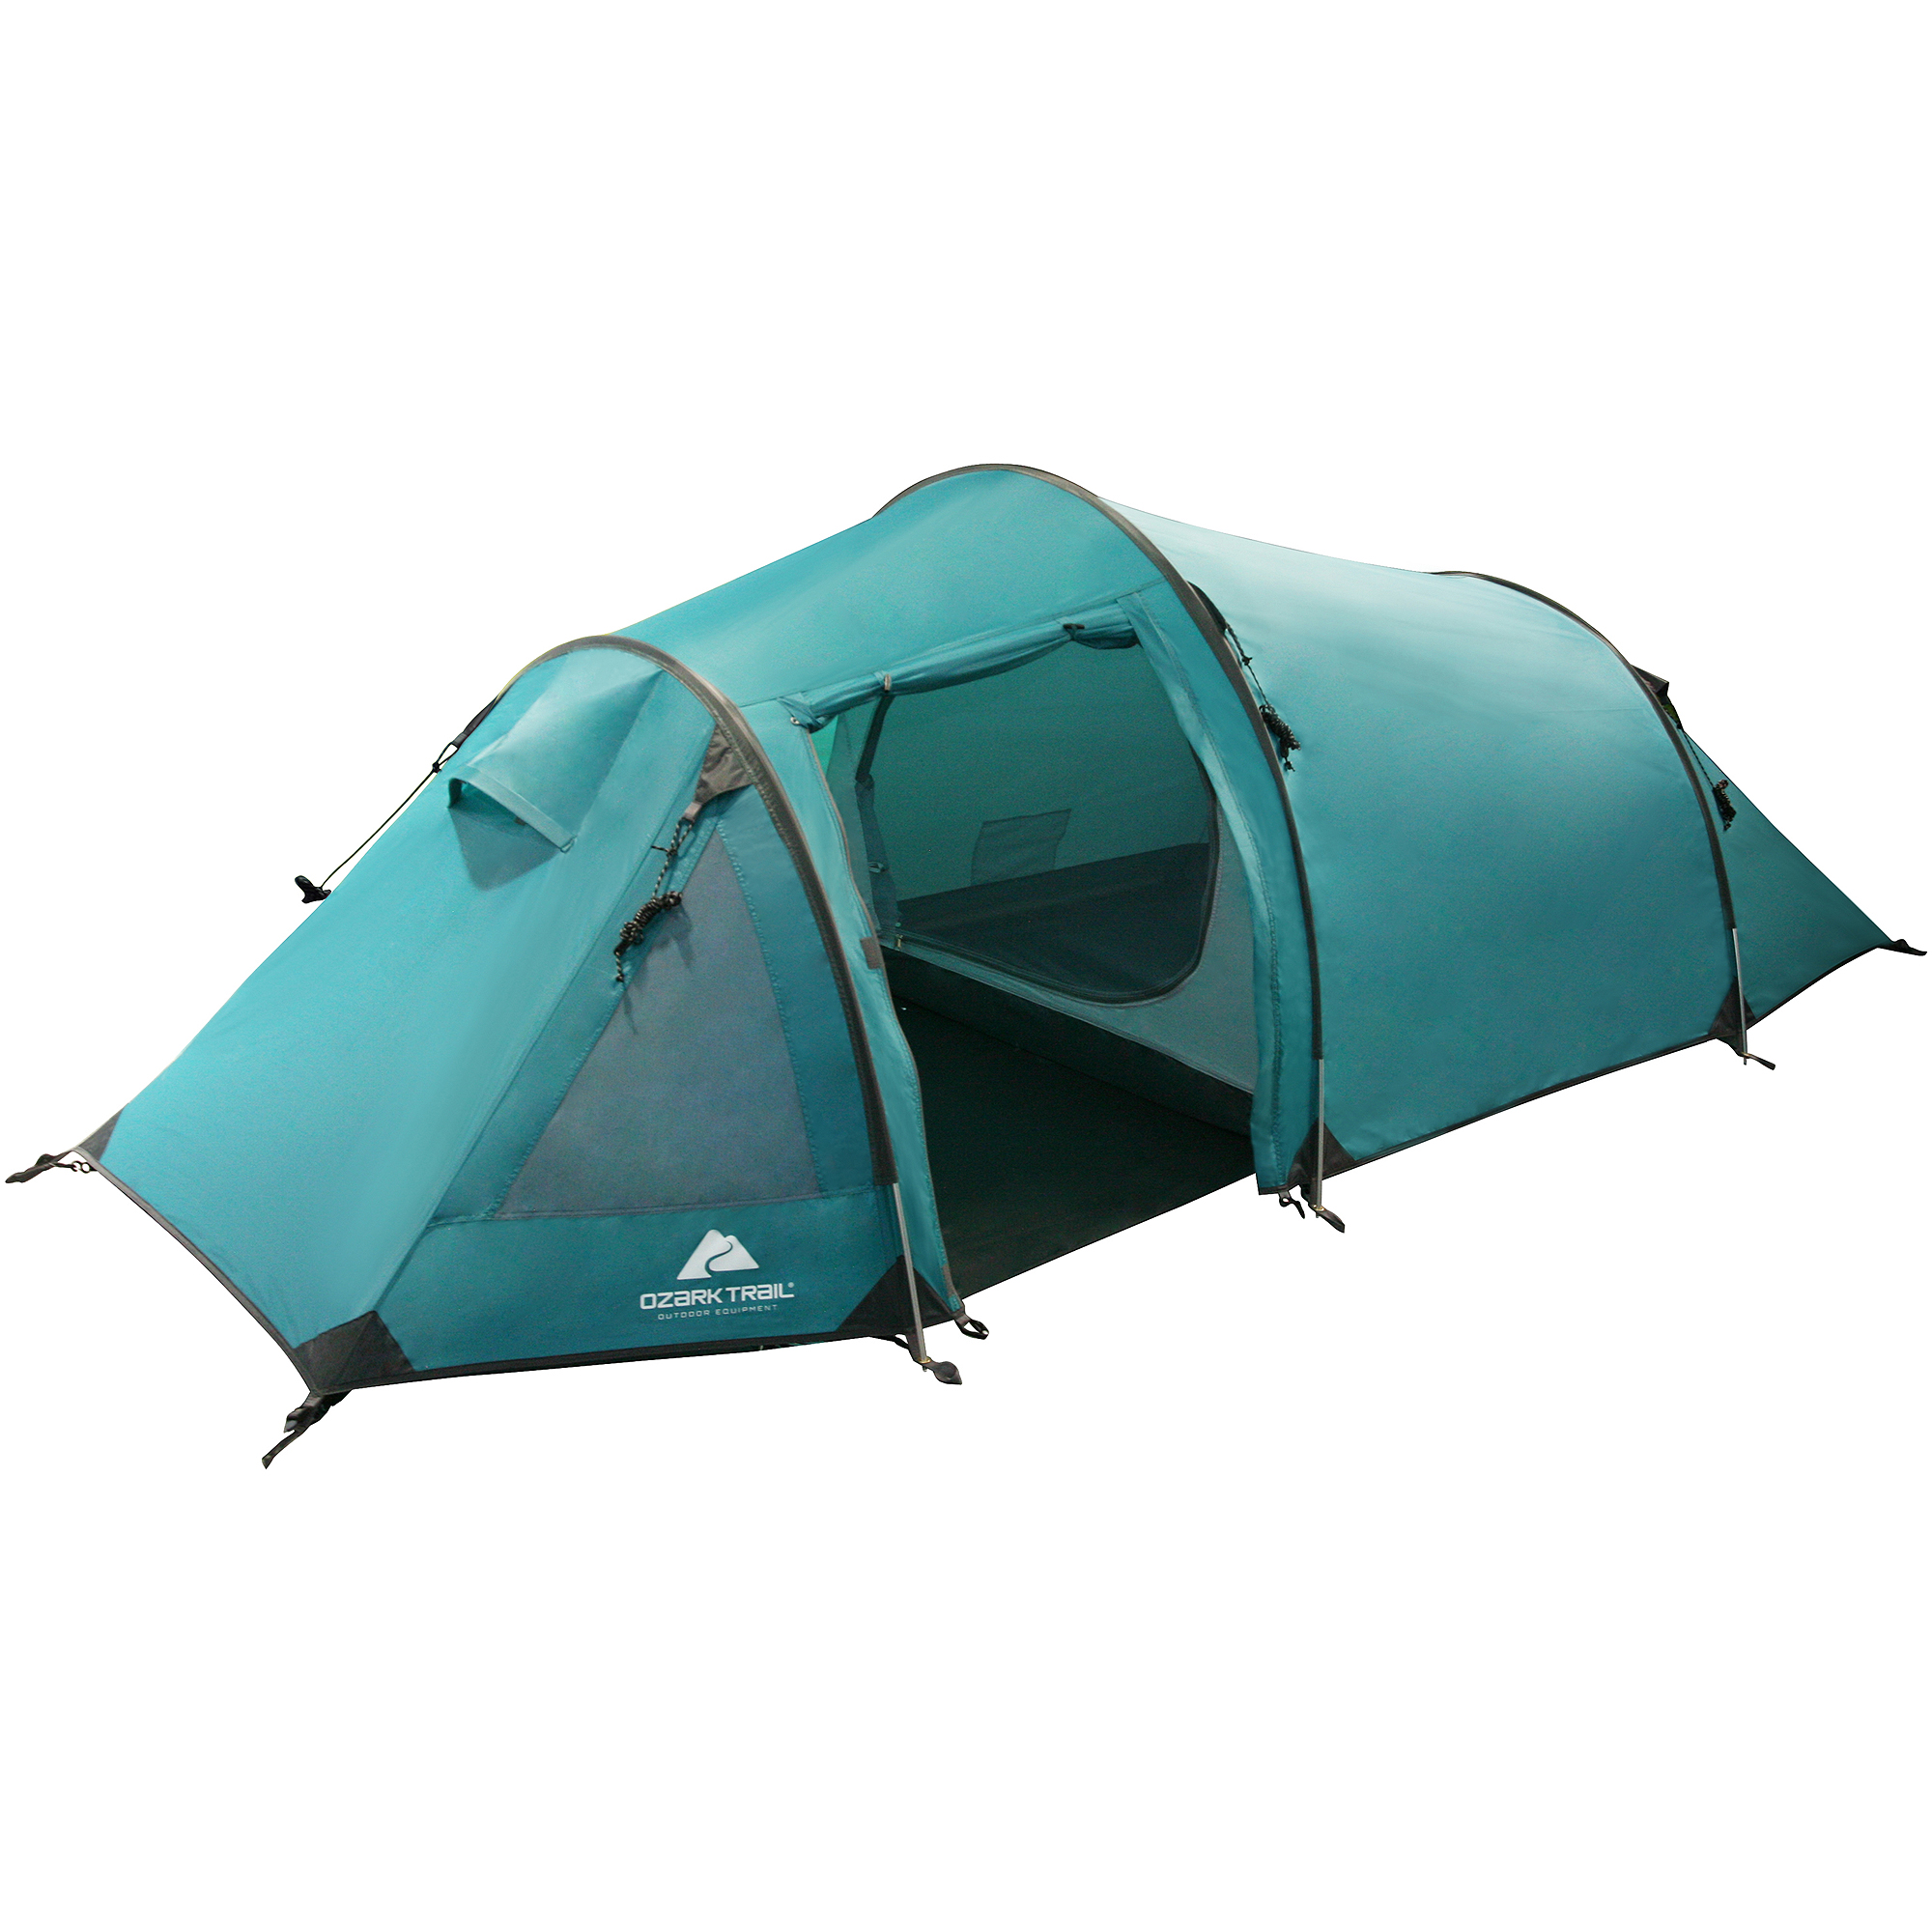 sc 1 st  Walmart.com & Ozark Trail Extended Stay Backpacking Tent Sleeps 2 - Walmart.com